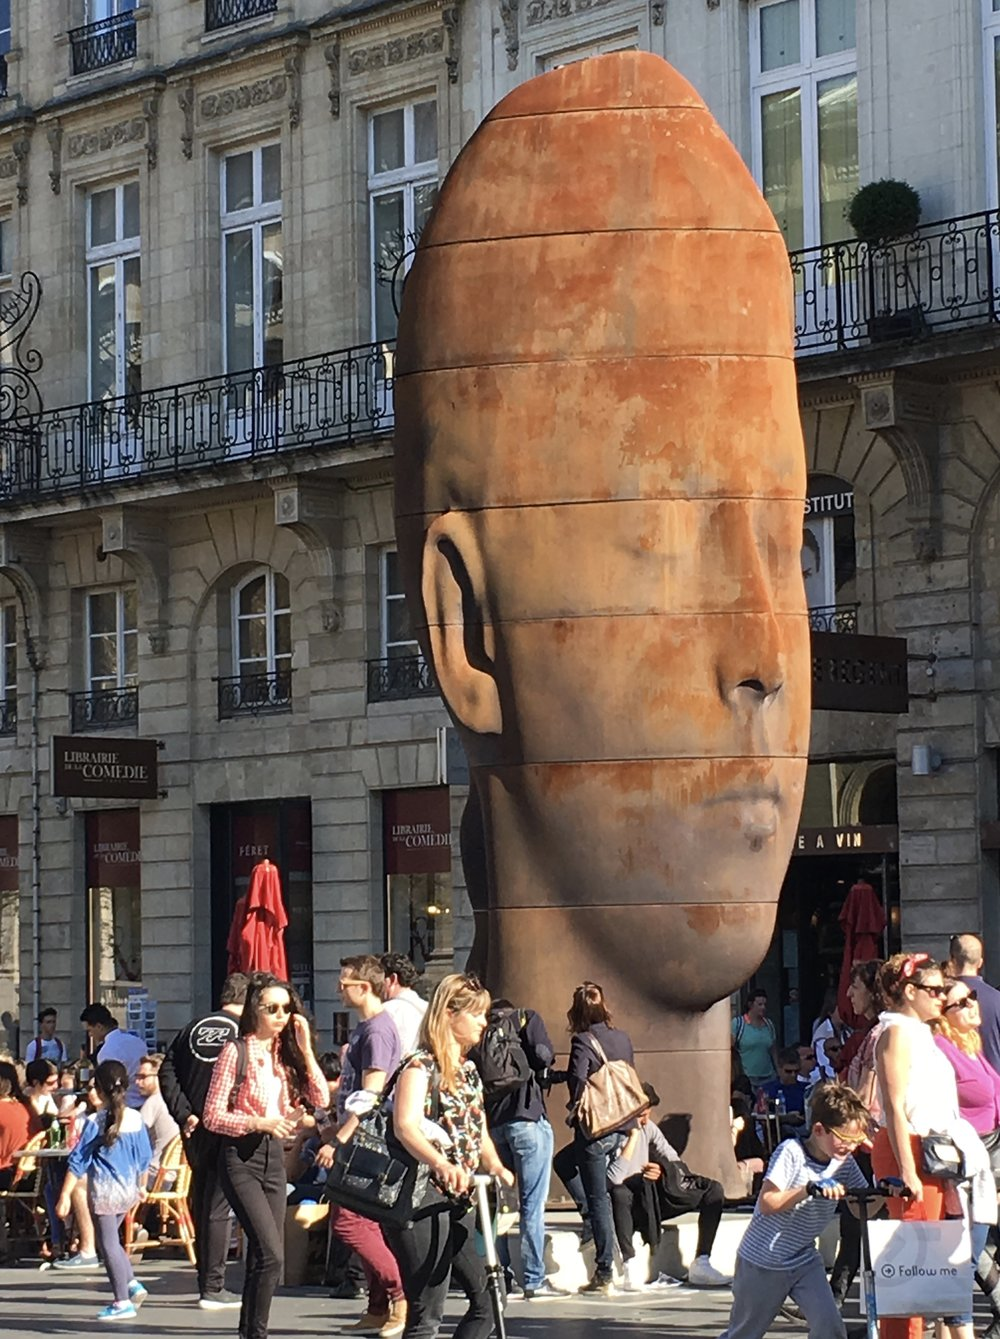 The city of Bordeaux is brimming with museums and art galleries but for those short on time and thin of wallet it also has an impressive array of street and public art to enjoy.